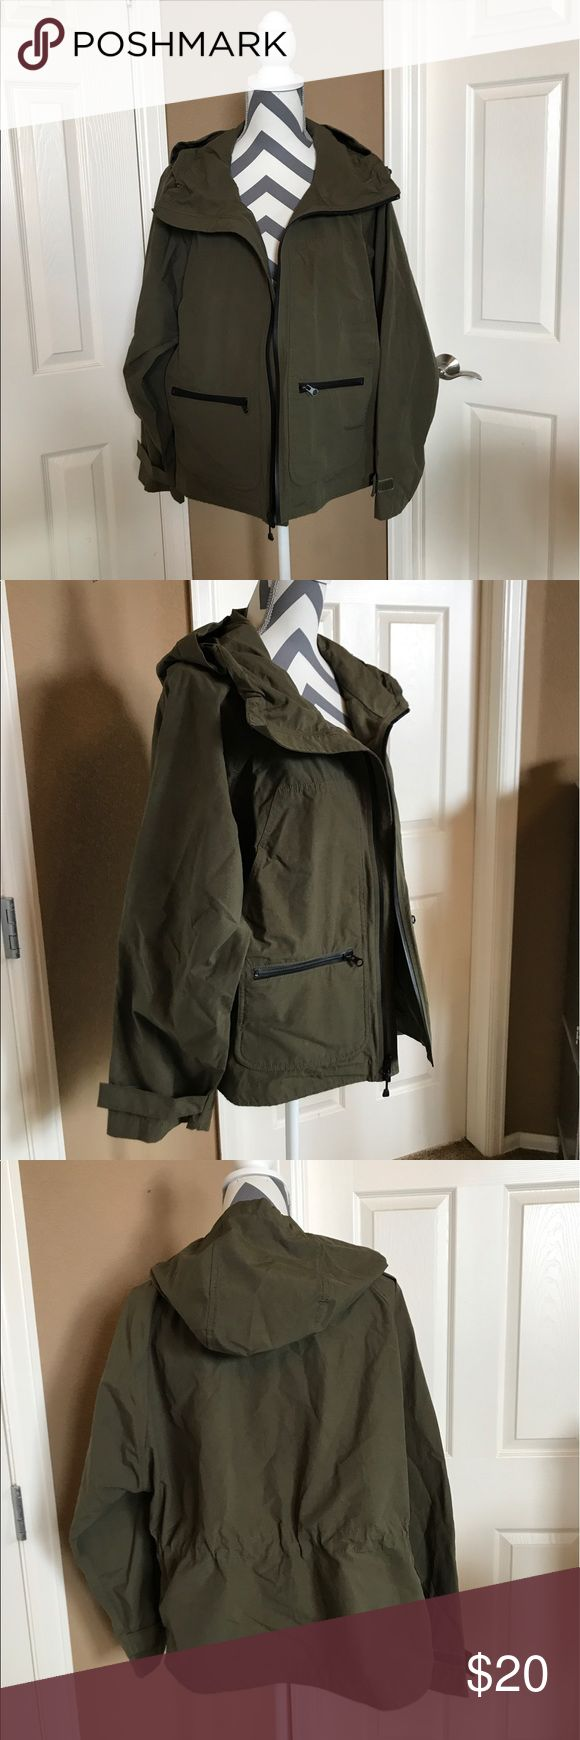 Gap Lightweight women's rain jacket This women's rain jacket from the Gap is lightweight and easy to throw on at a moments notice.  Roomy fit.  Olive green with black accents.  It also packs really nicely. GAP Jackets & Coats